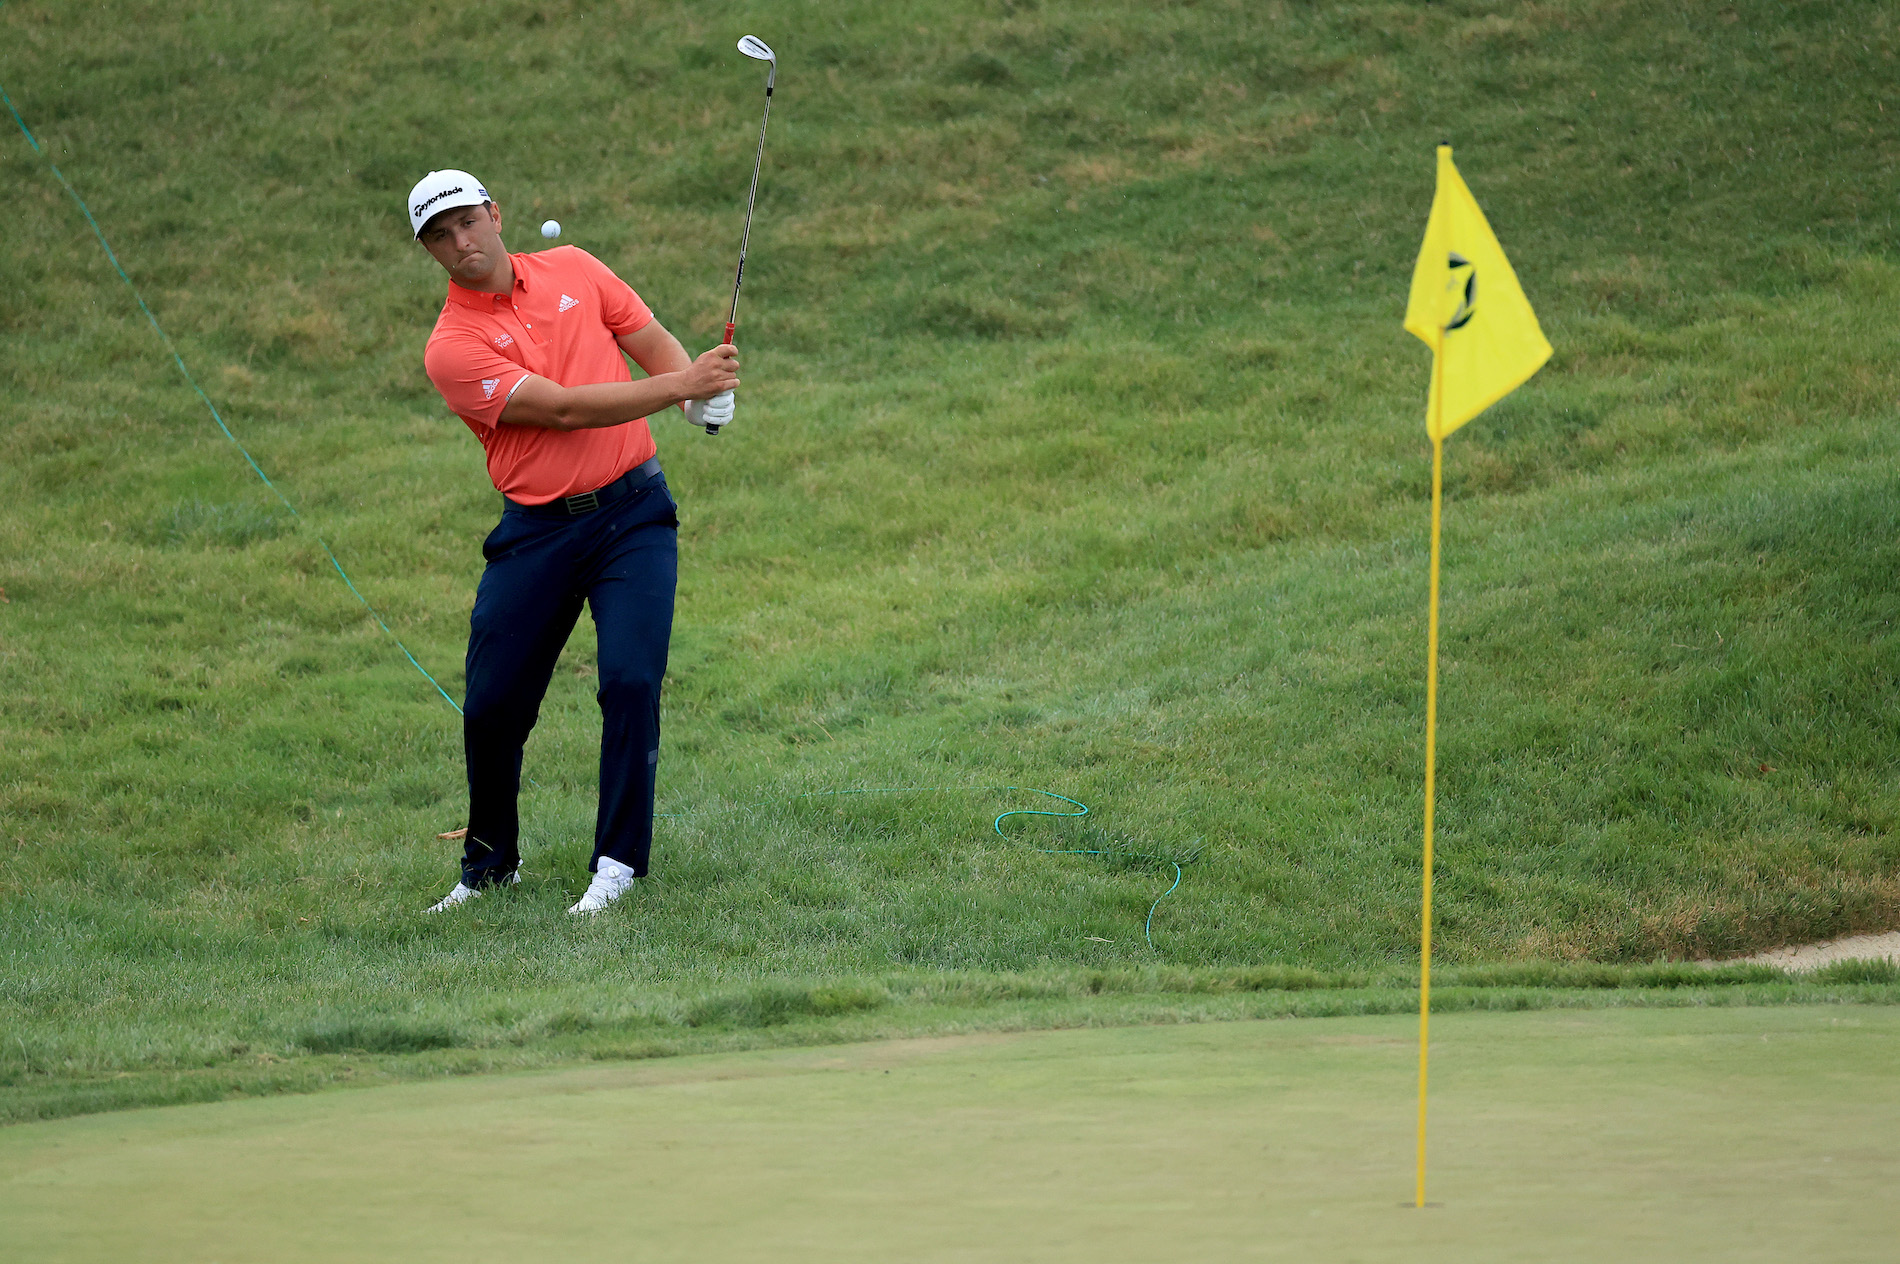 Jon Rahm Costs Daily Fantasy Player $150,000 by Moving His Golf Ball 1 Millimeter